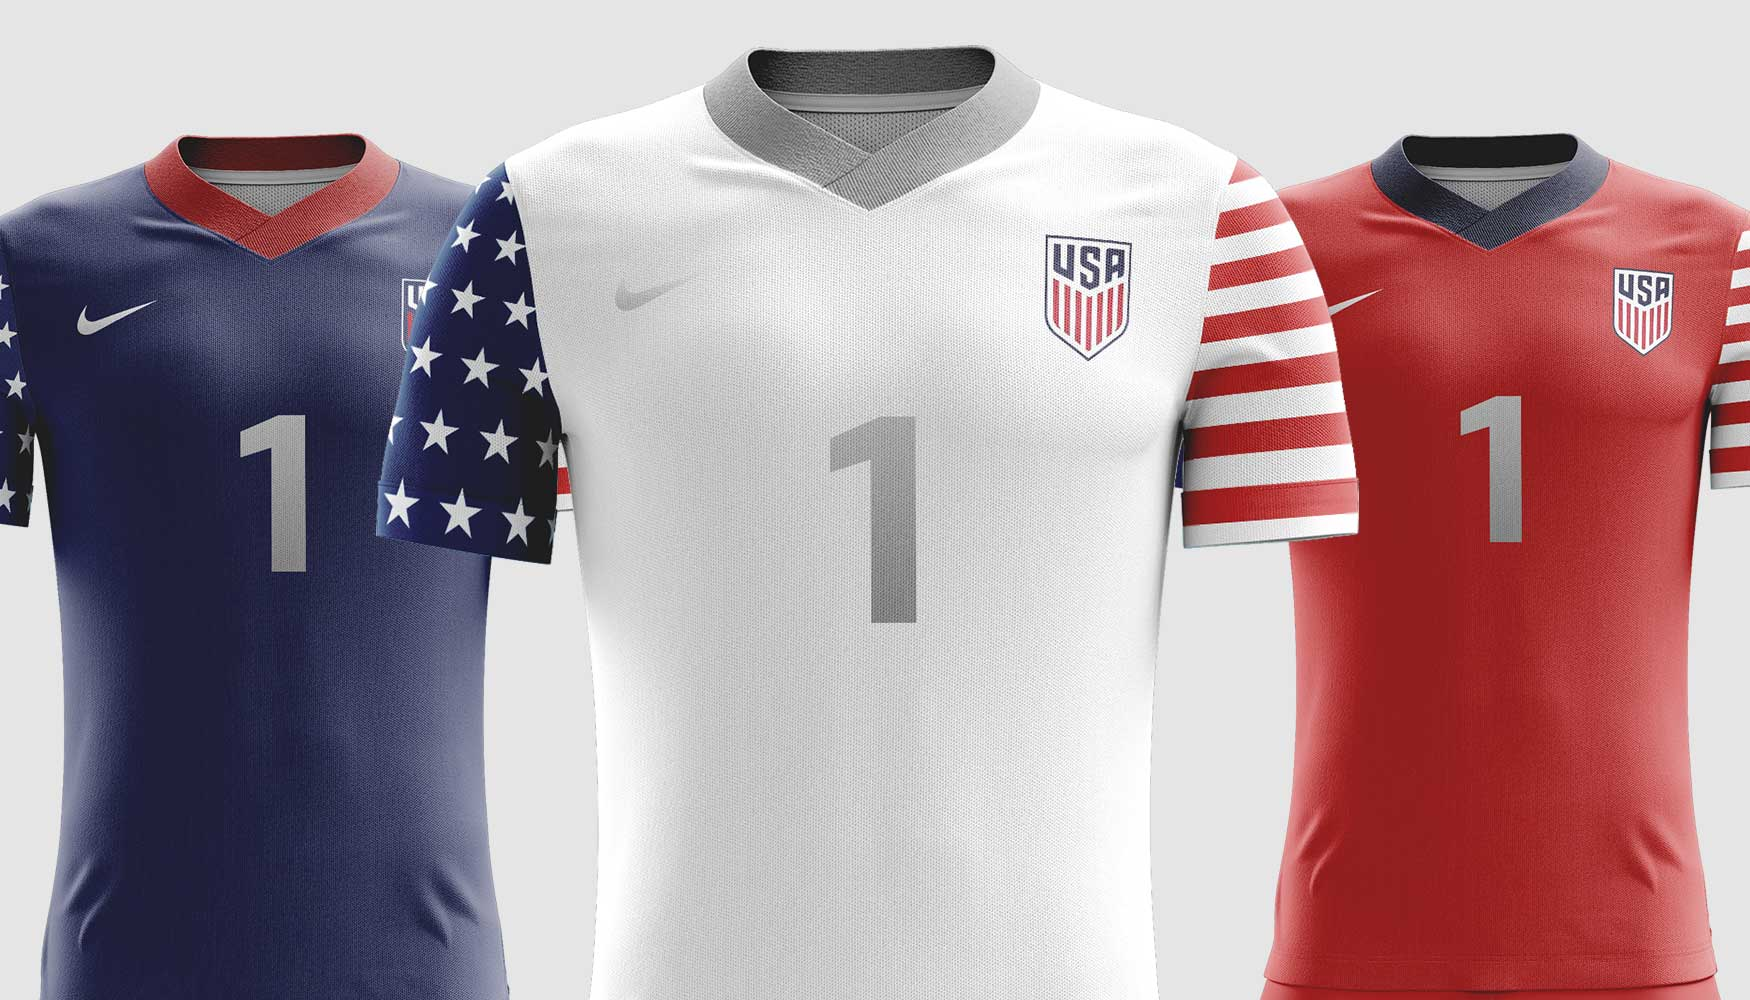 watch b3a61 d19fe Concept Nike US Soccer Jersey Designs | USMNT Jersey Concepts